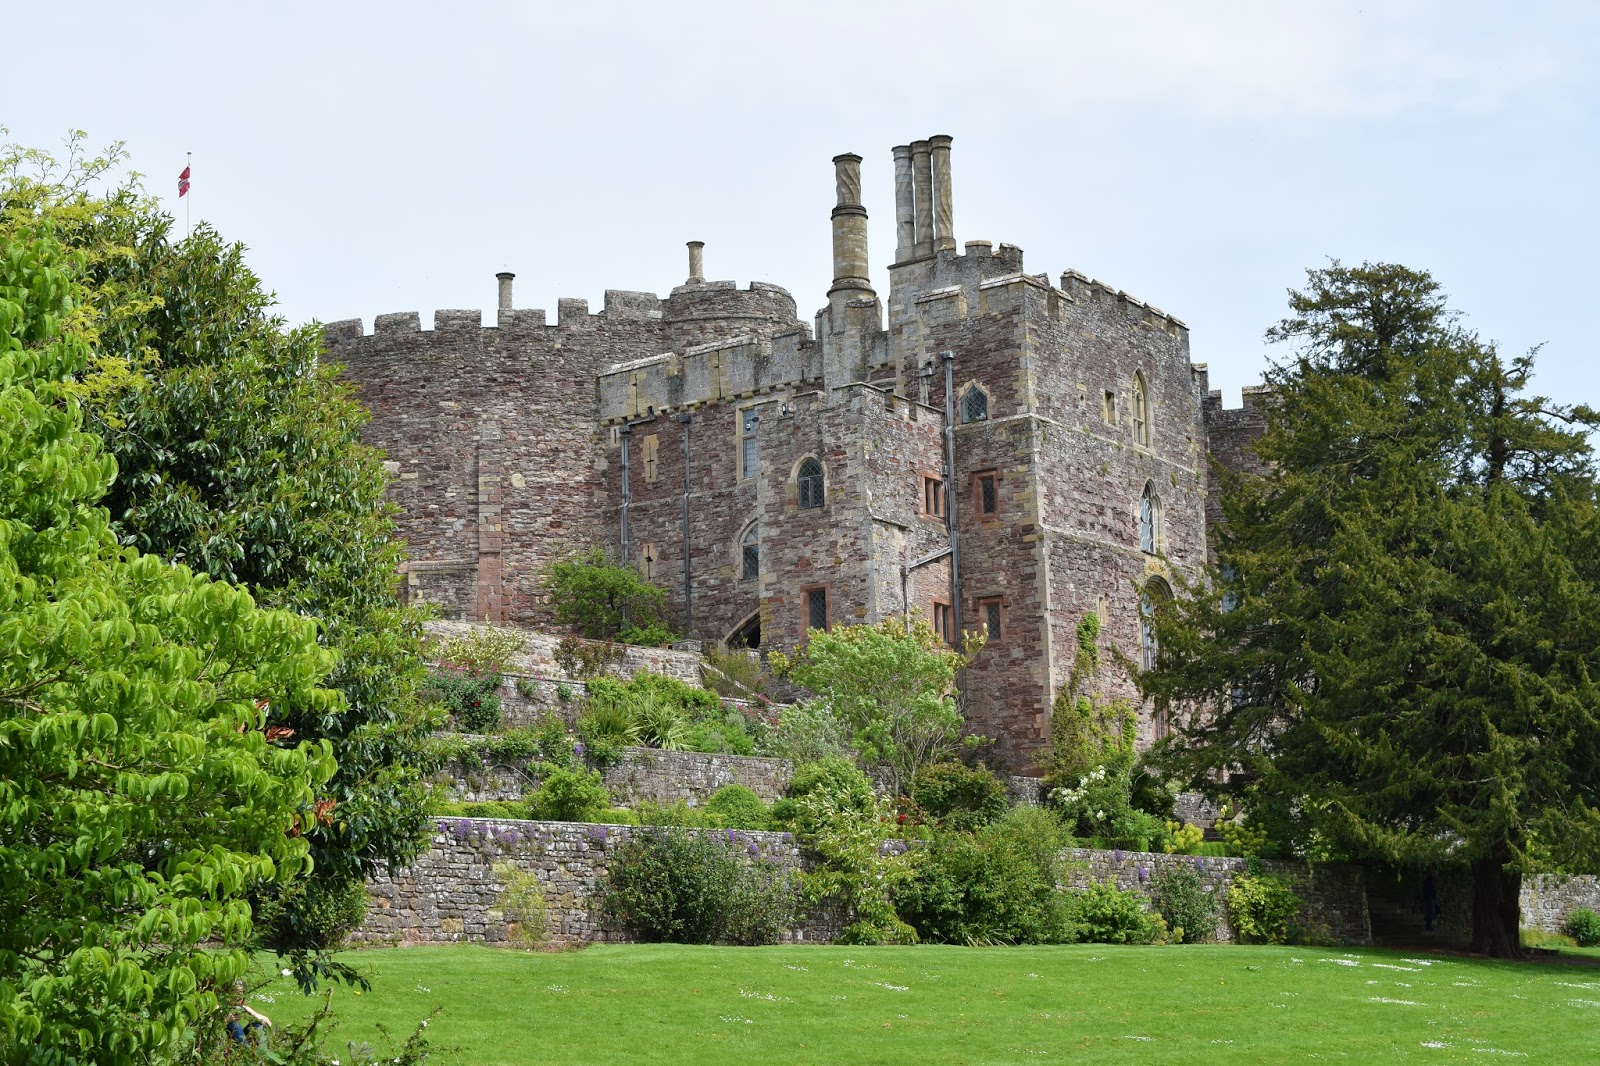 looking up towards berkeley castle which is mostly visible apart from the edges which are covered by the trees